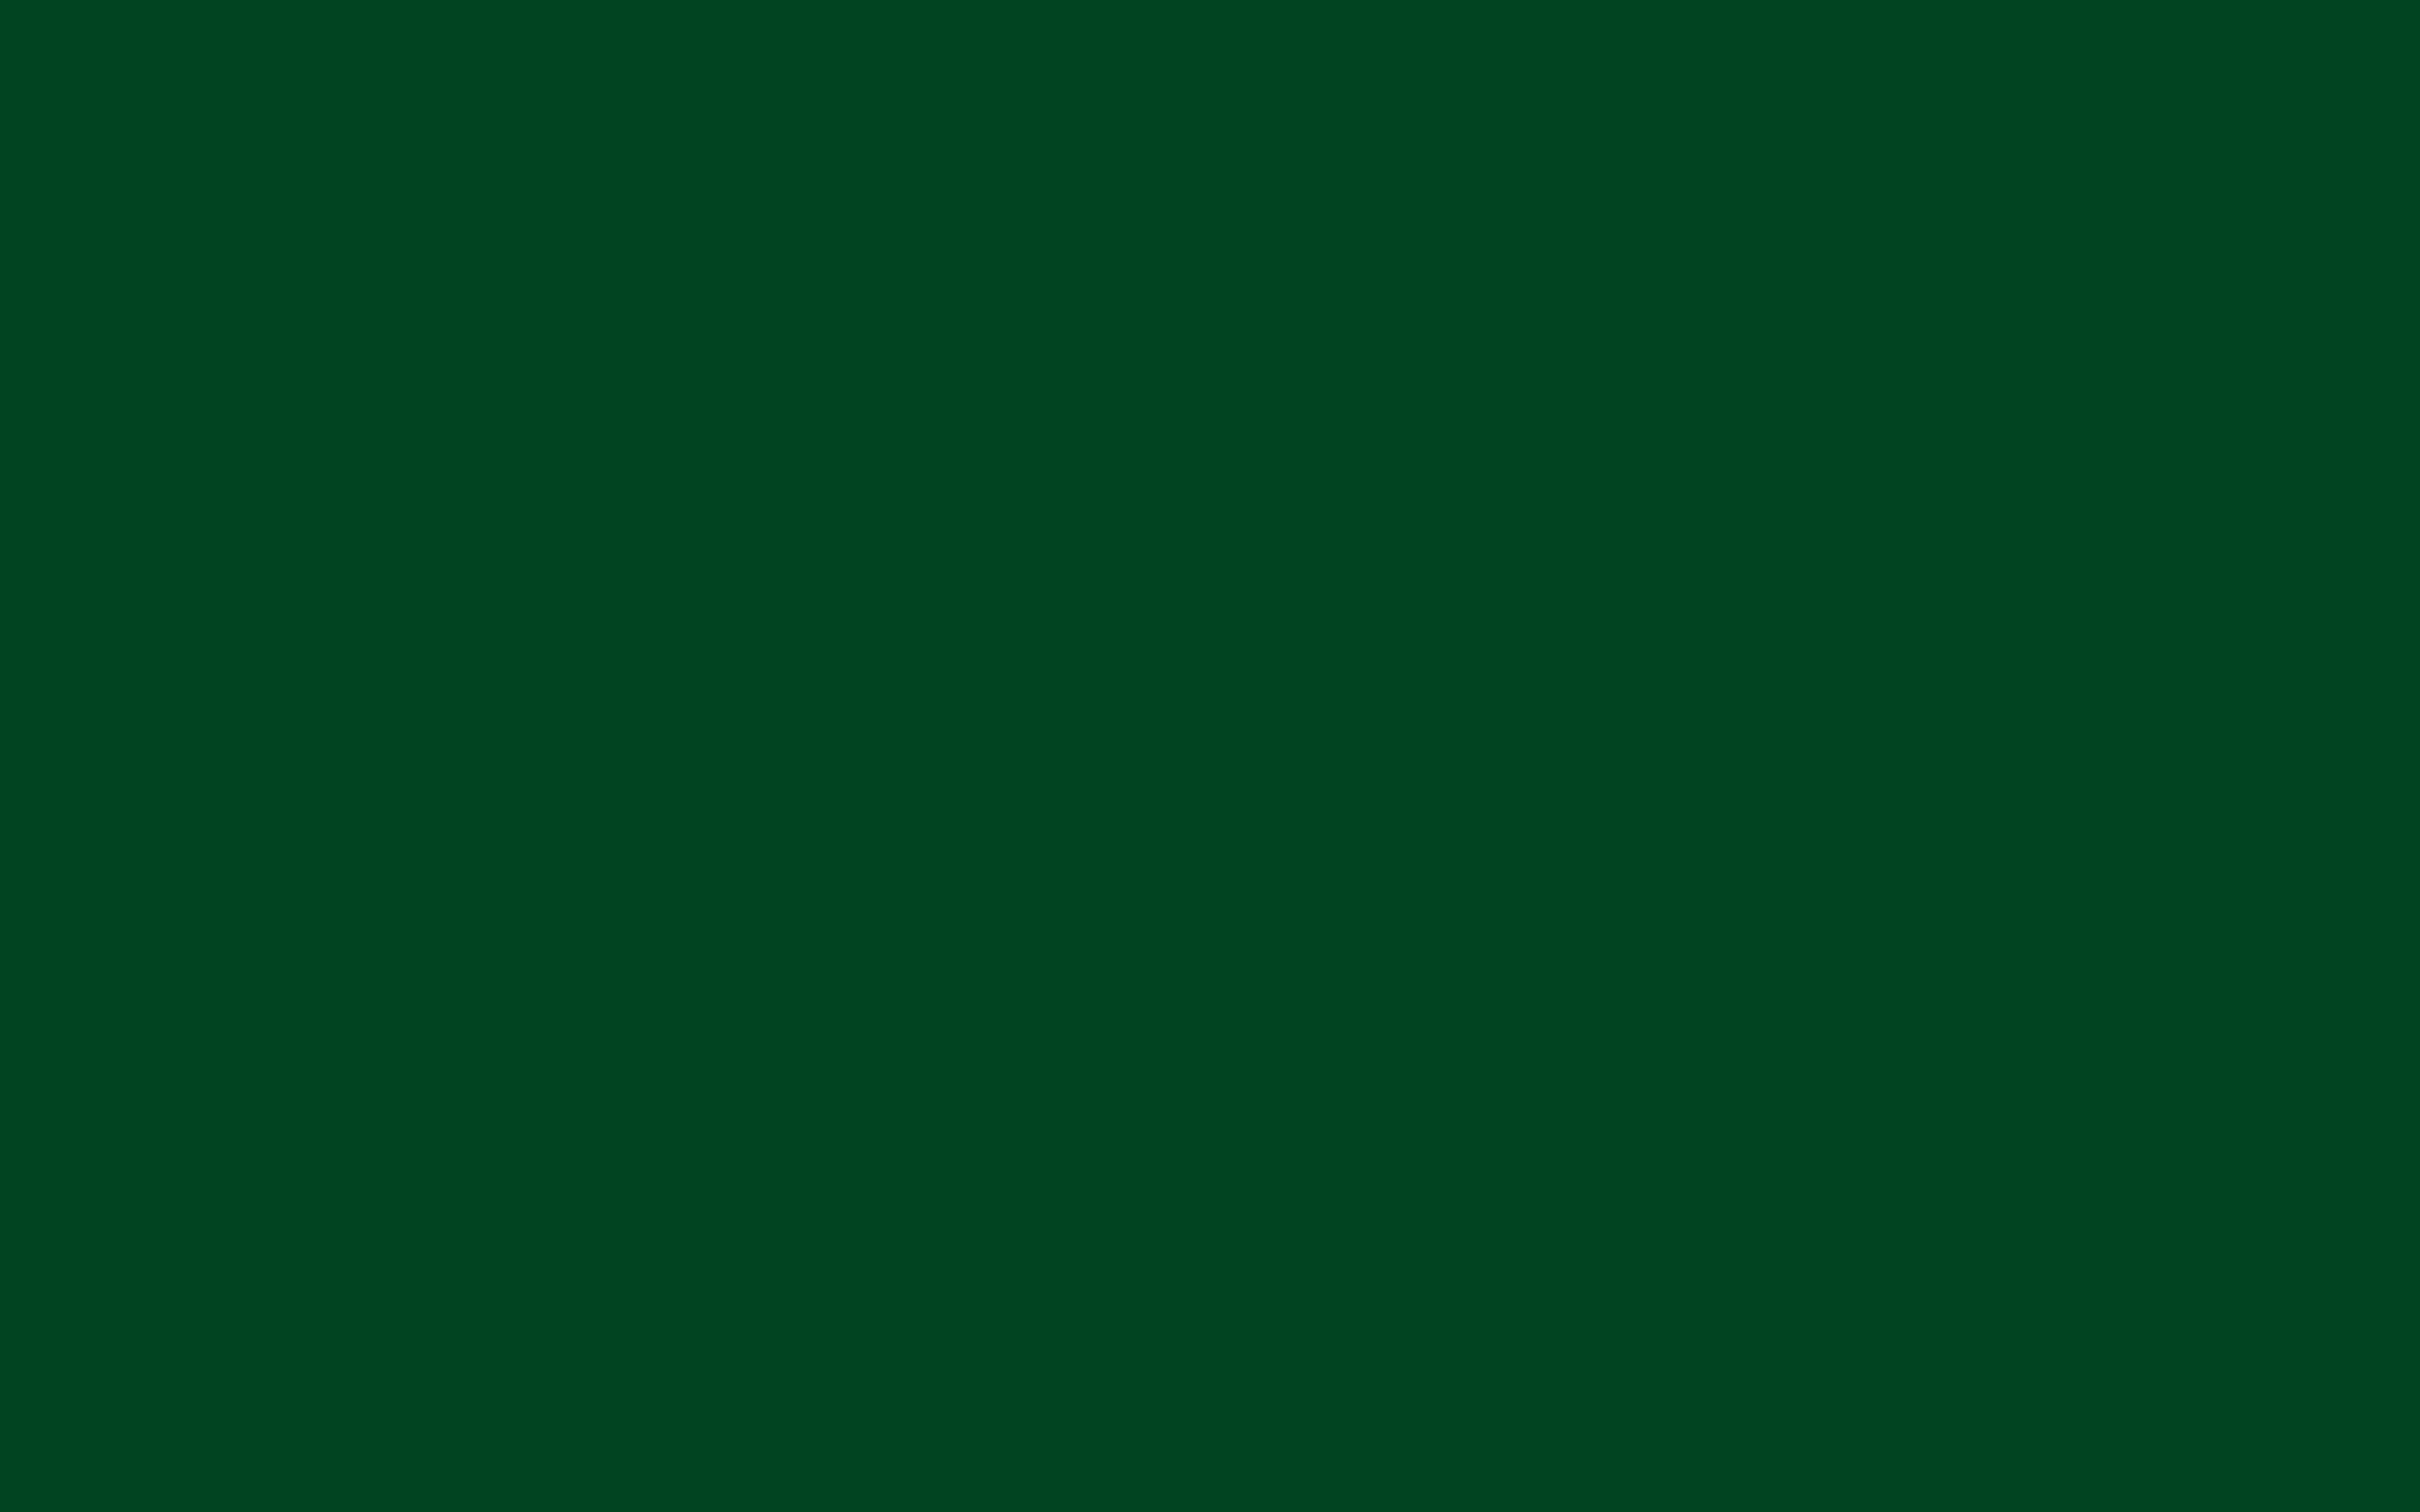 Green Color Background Wallpaper (56+ images)